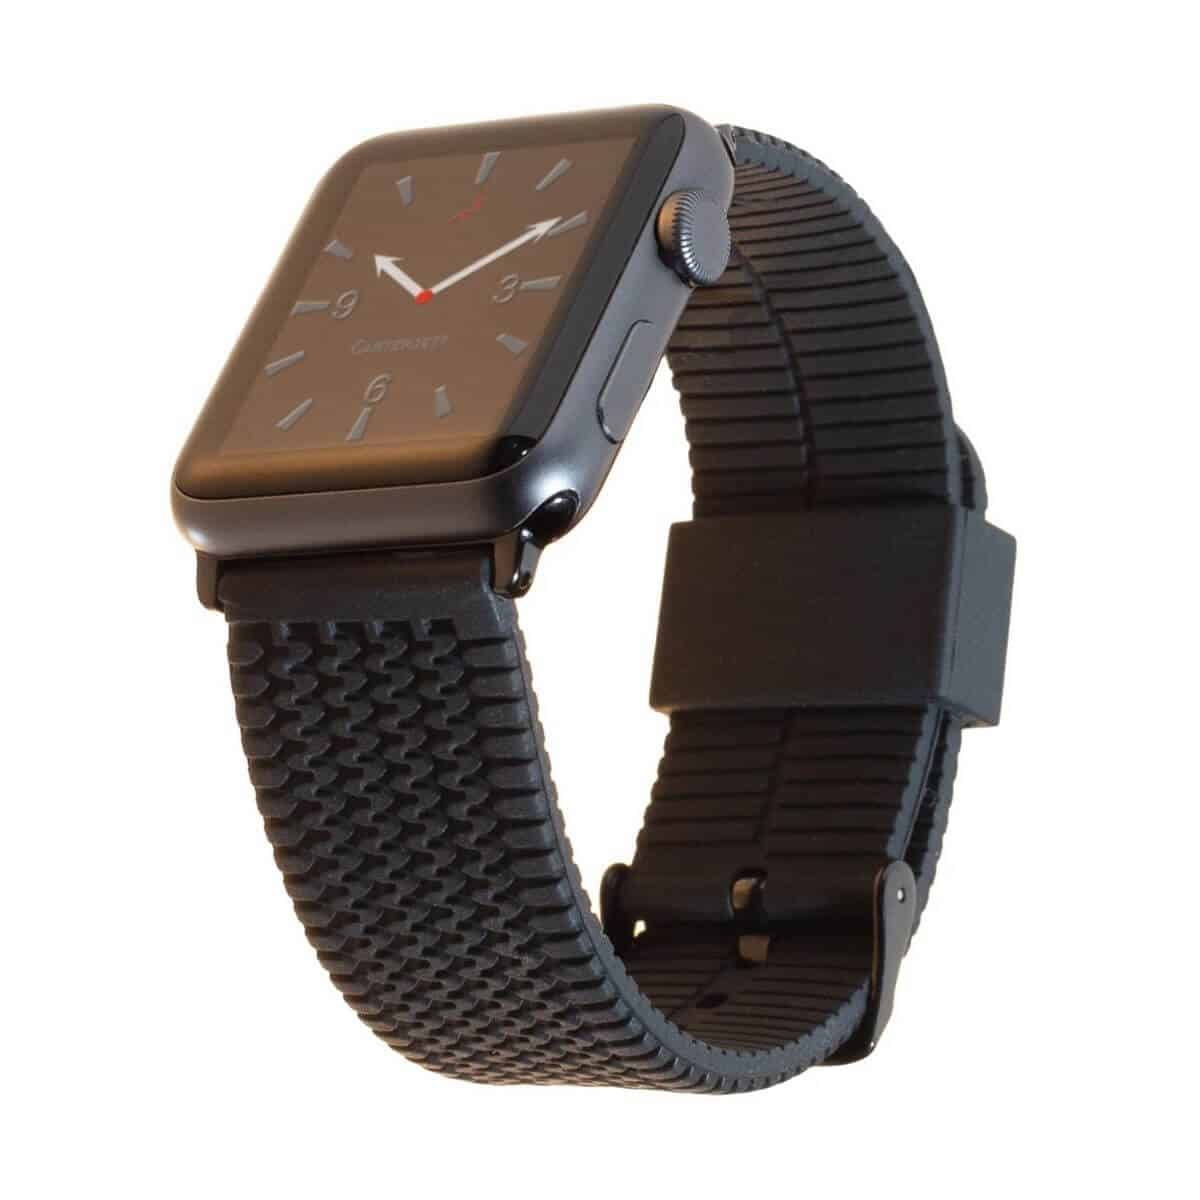 Apple Watch with a black silicone band that has a tire tread pattern.